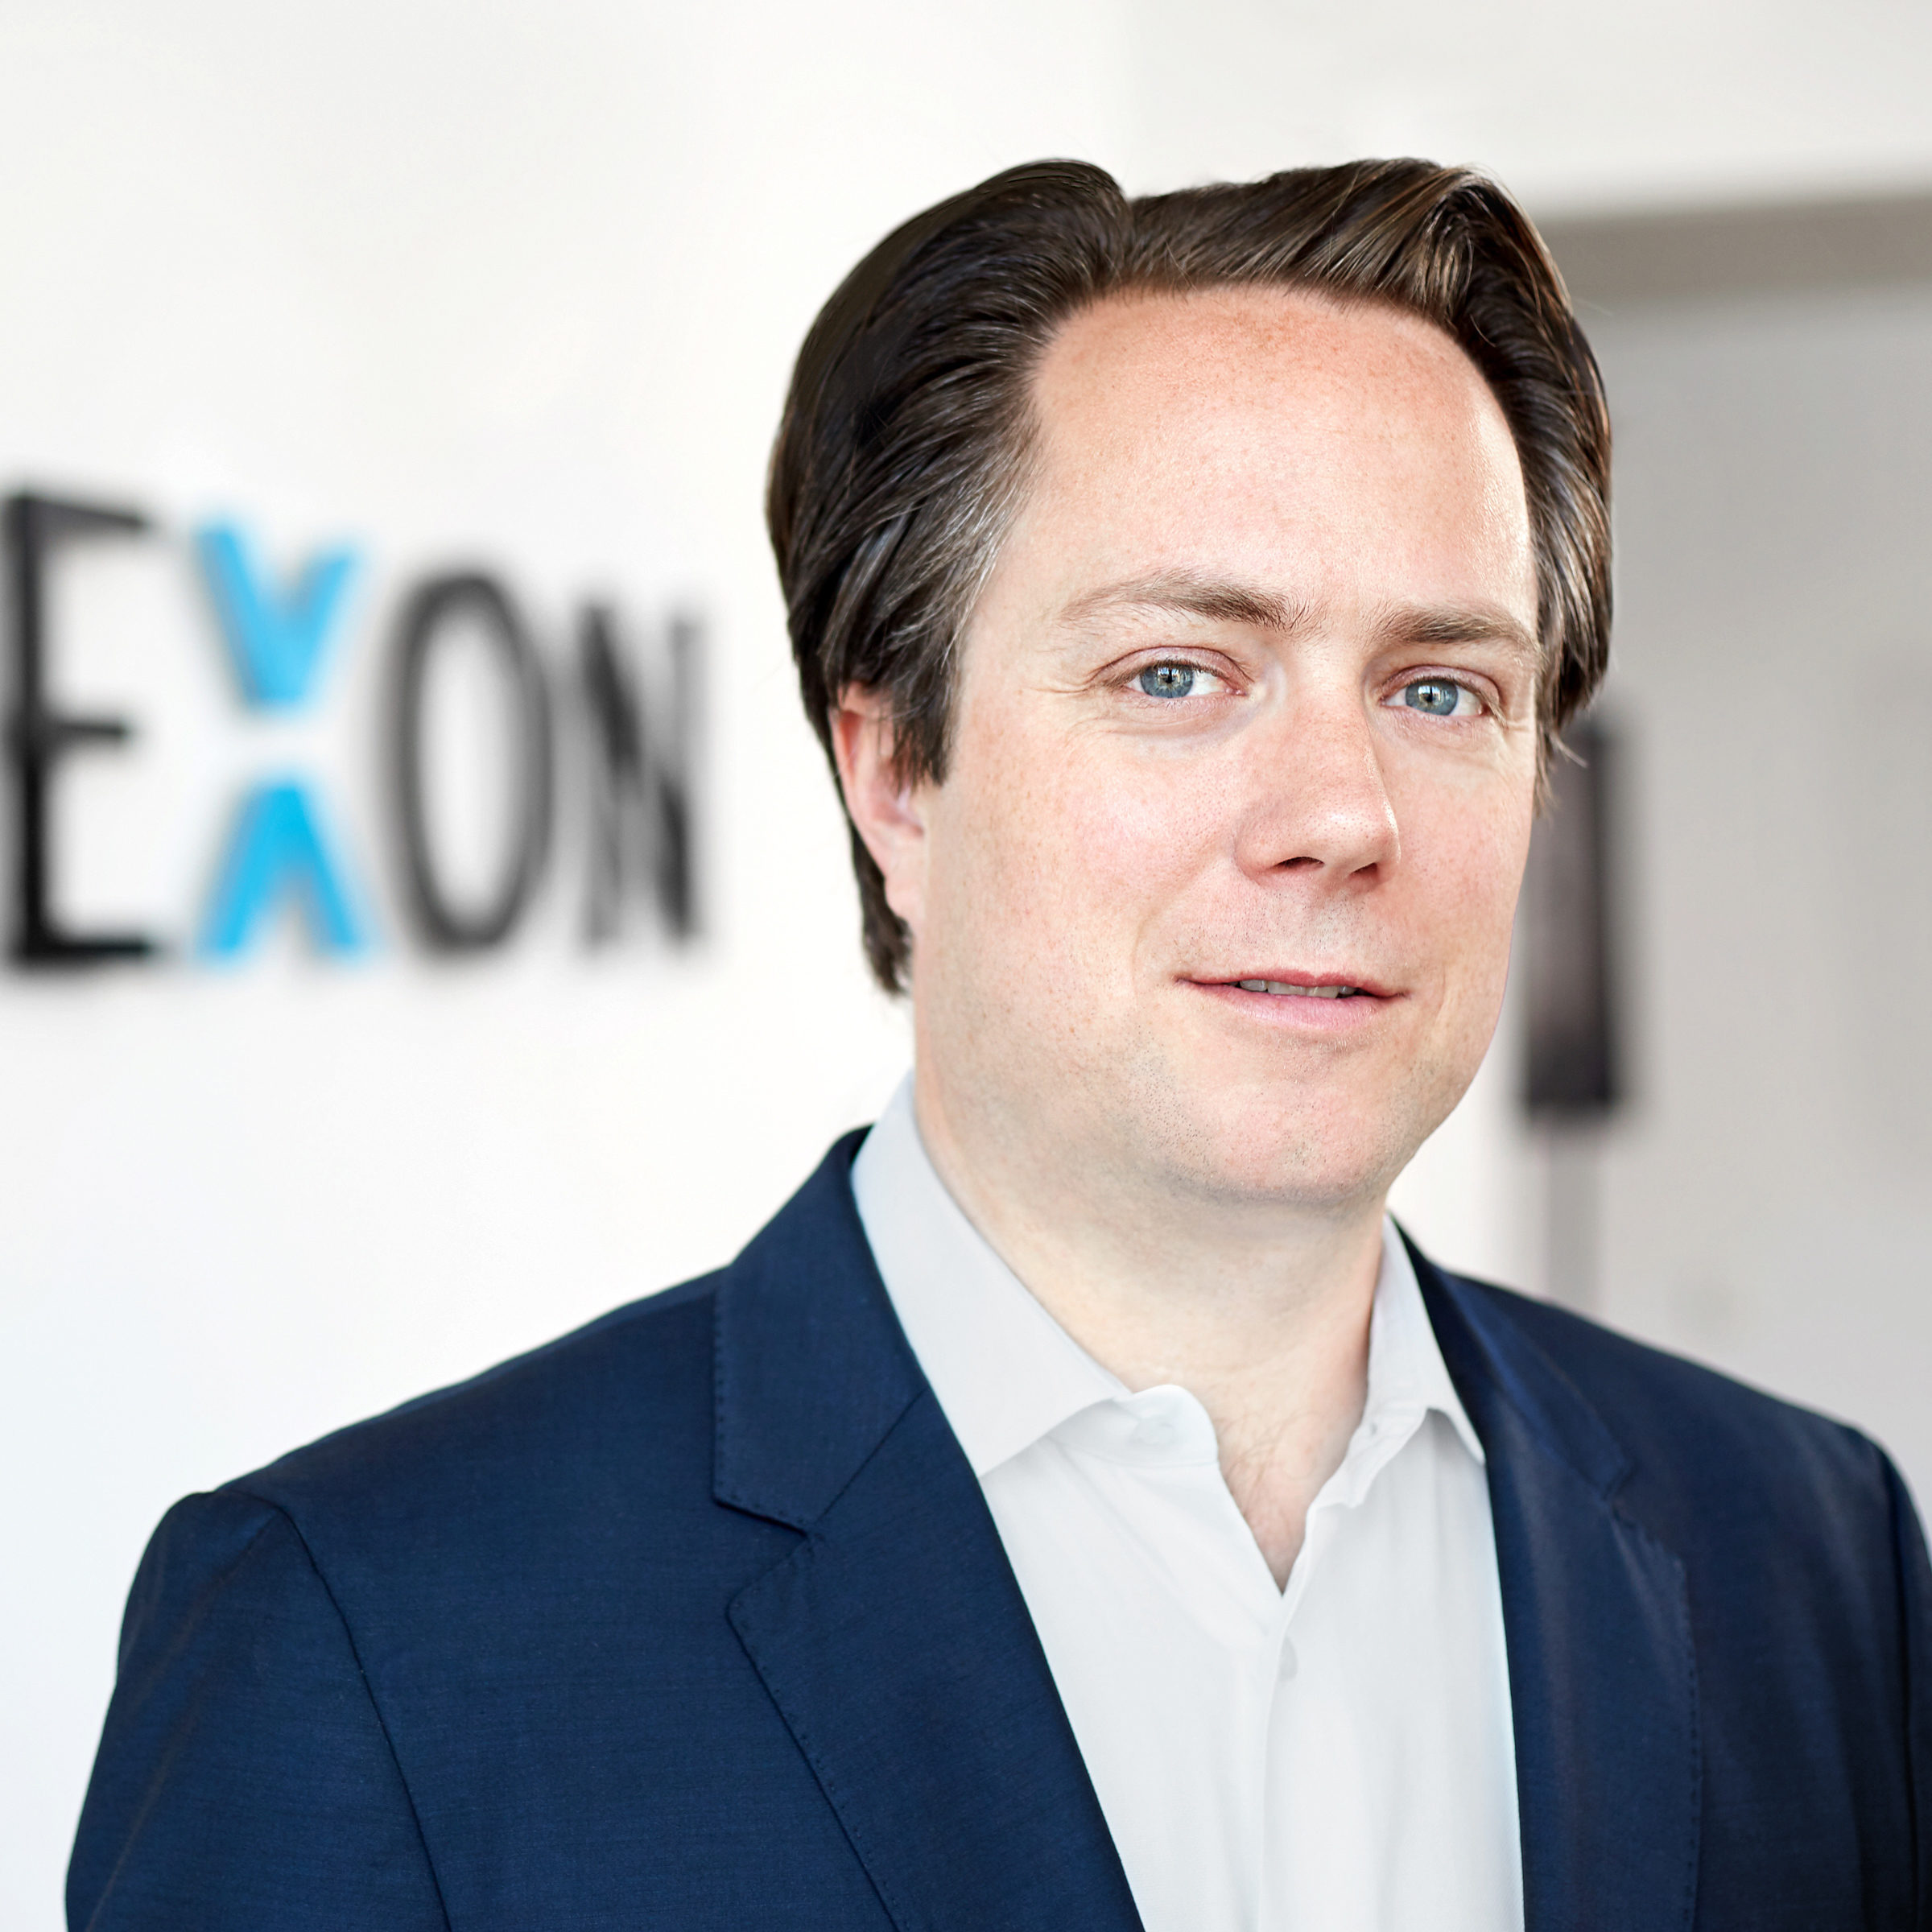 Nikolai serves as Managing Director of KINEXON Industries GmbH